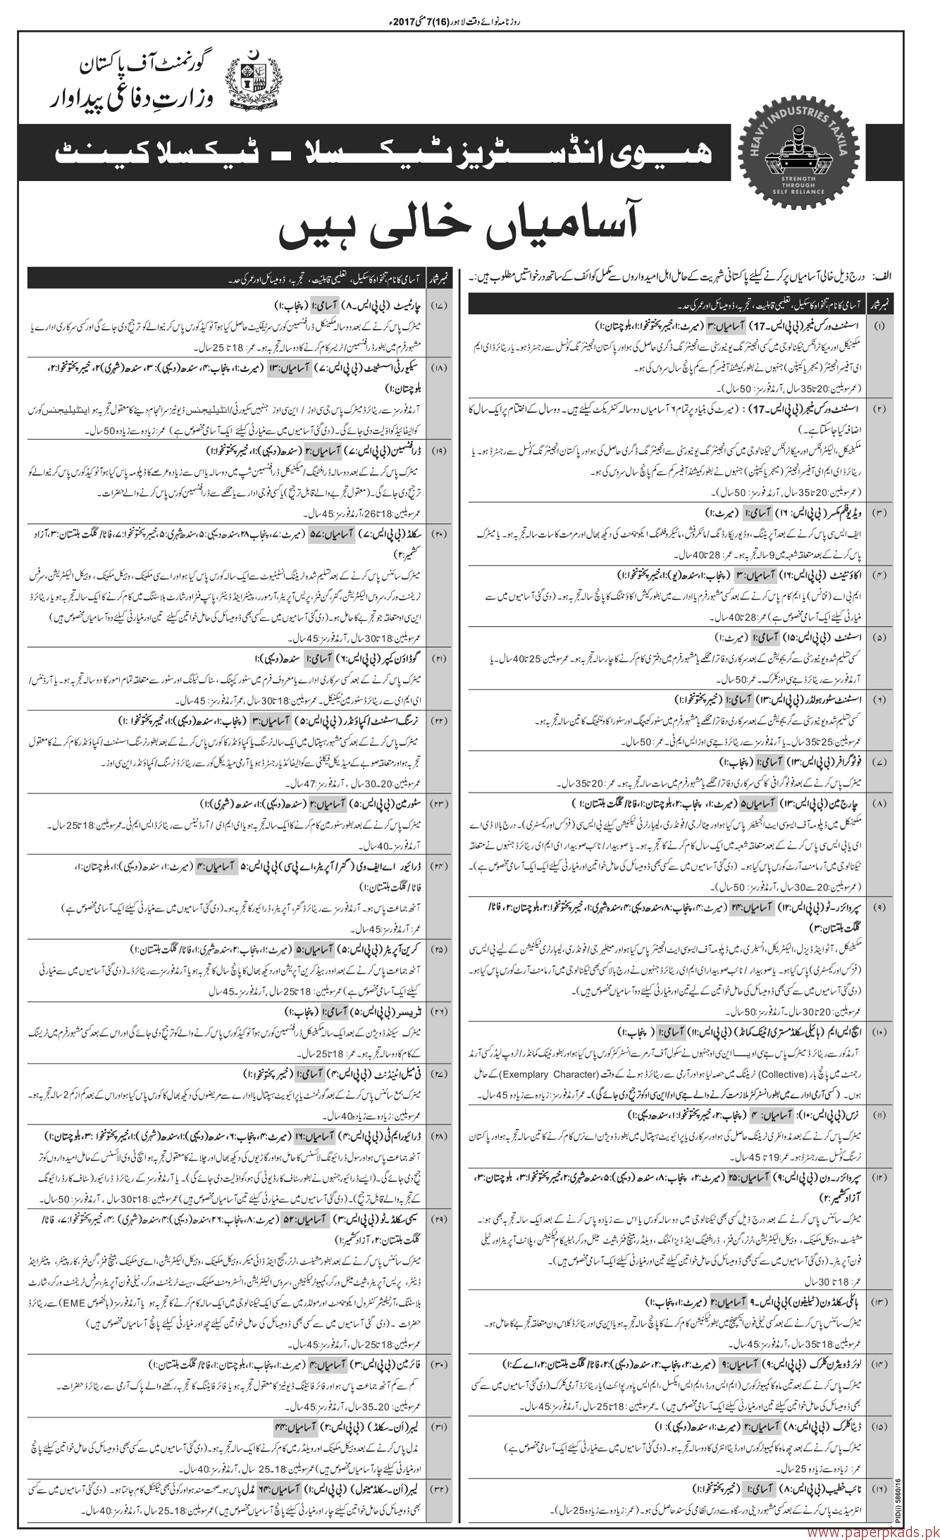 Government of Pakistan - Ministry of Defence - Heavy Industries Taxila Jobs Part 1